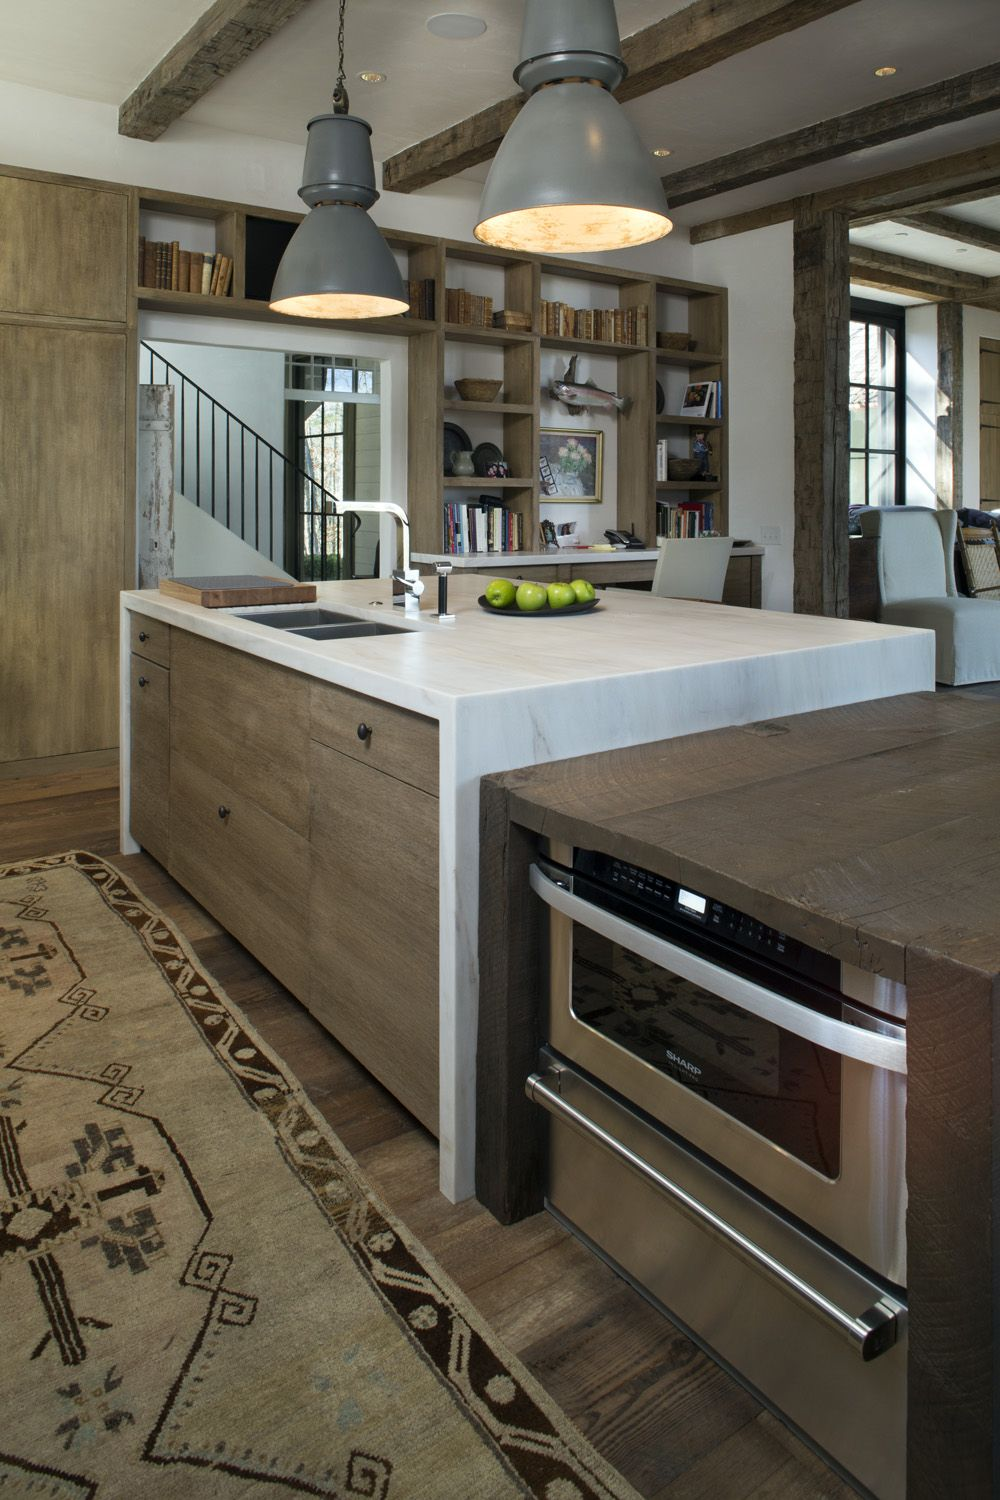 Overlook Lane Custom Cabinets Asheville Kitchen Cabinets Nc Keystone Kitchen Bath Rustic Kitchen Design Sleek Kitchen